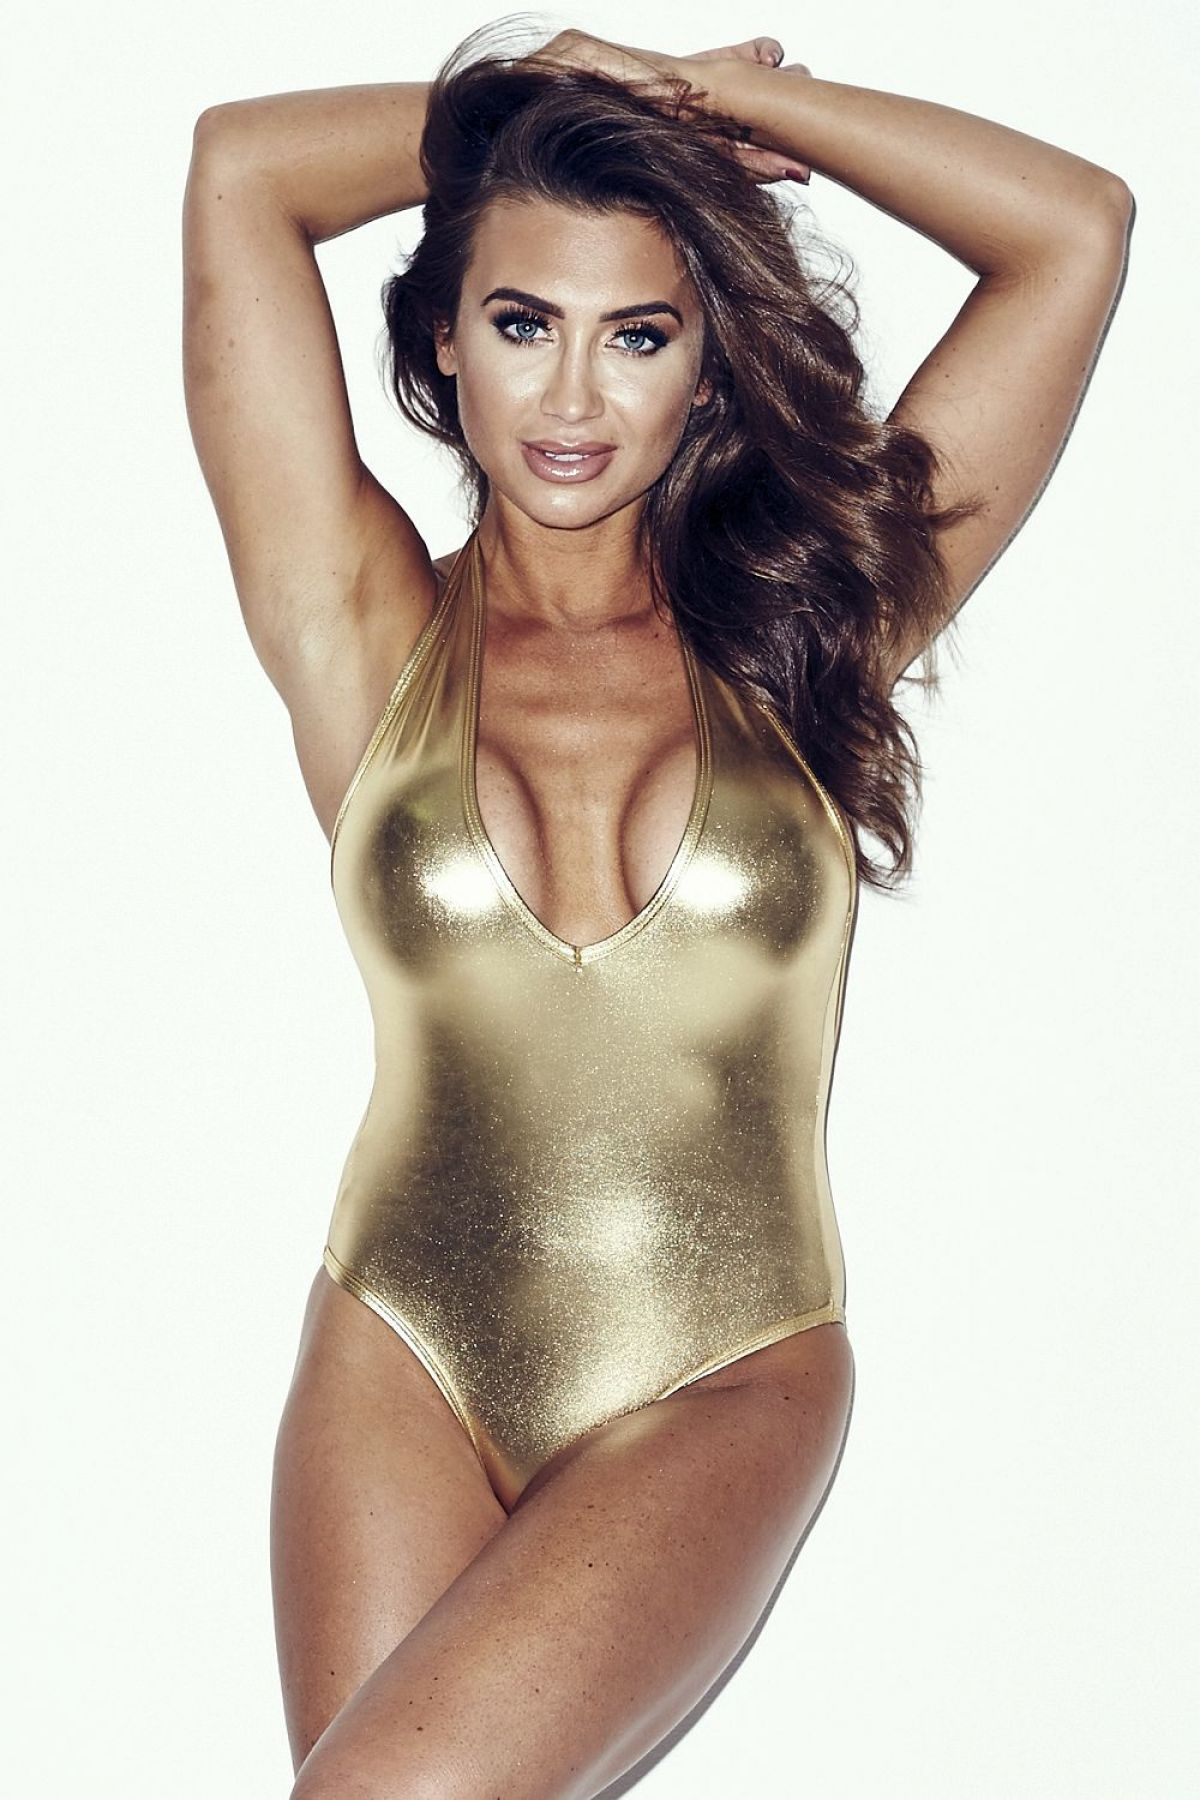 Lauren Goodger In A Gold One-Piece Swimsuit